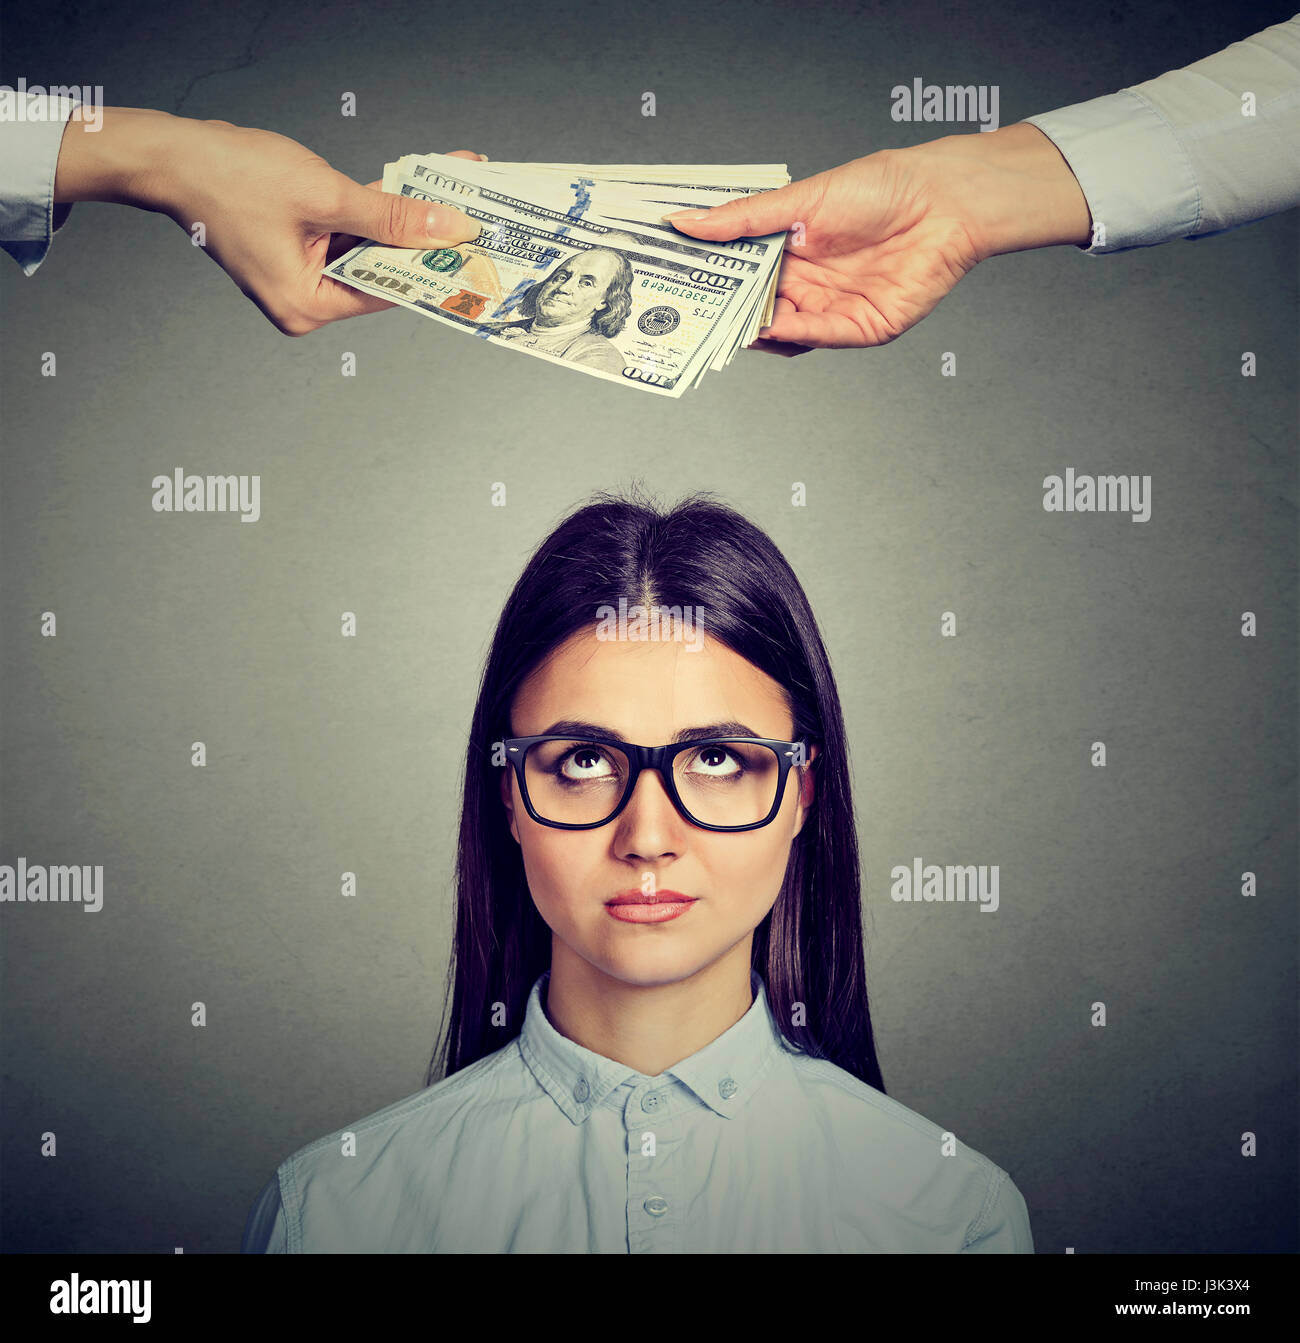 Worried sad woman looking up at two hands exchanging money - Stock Image